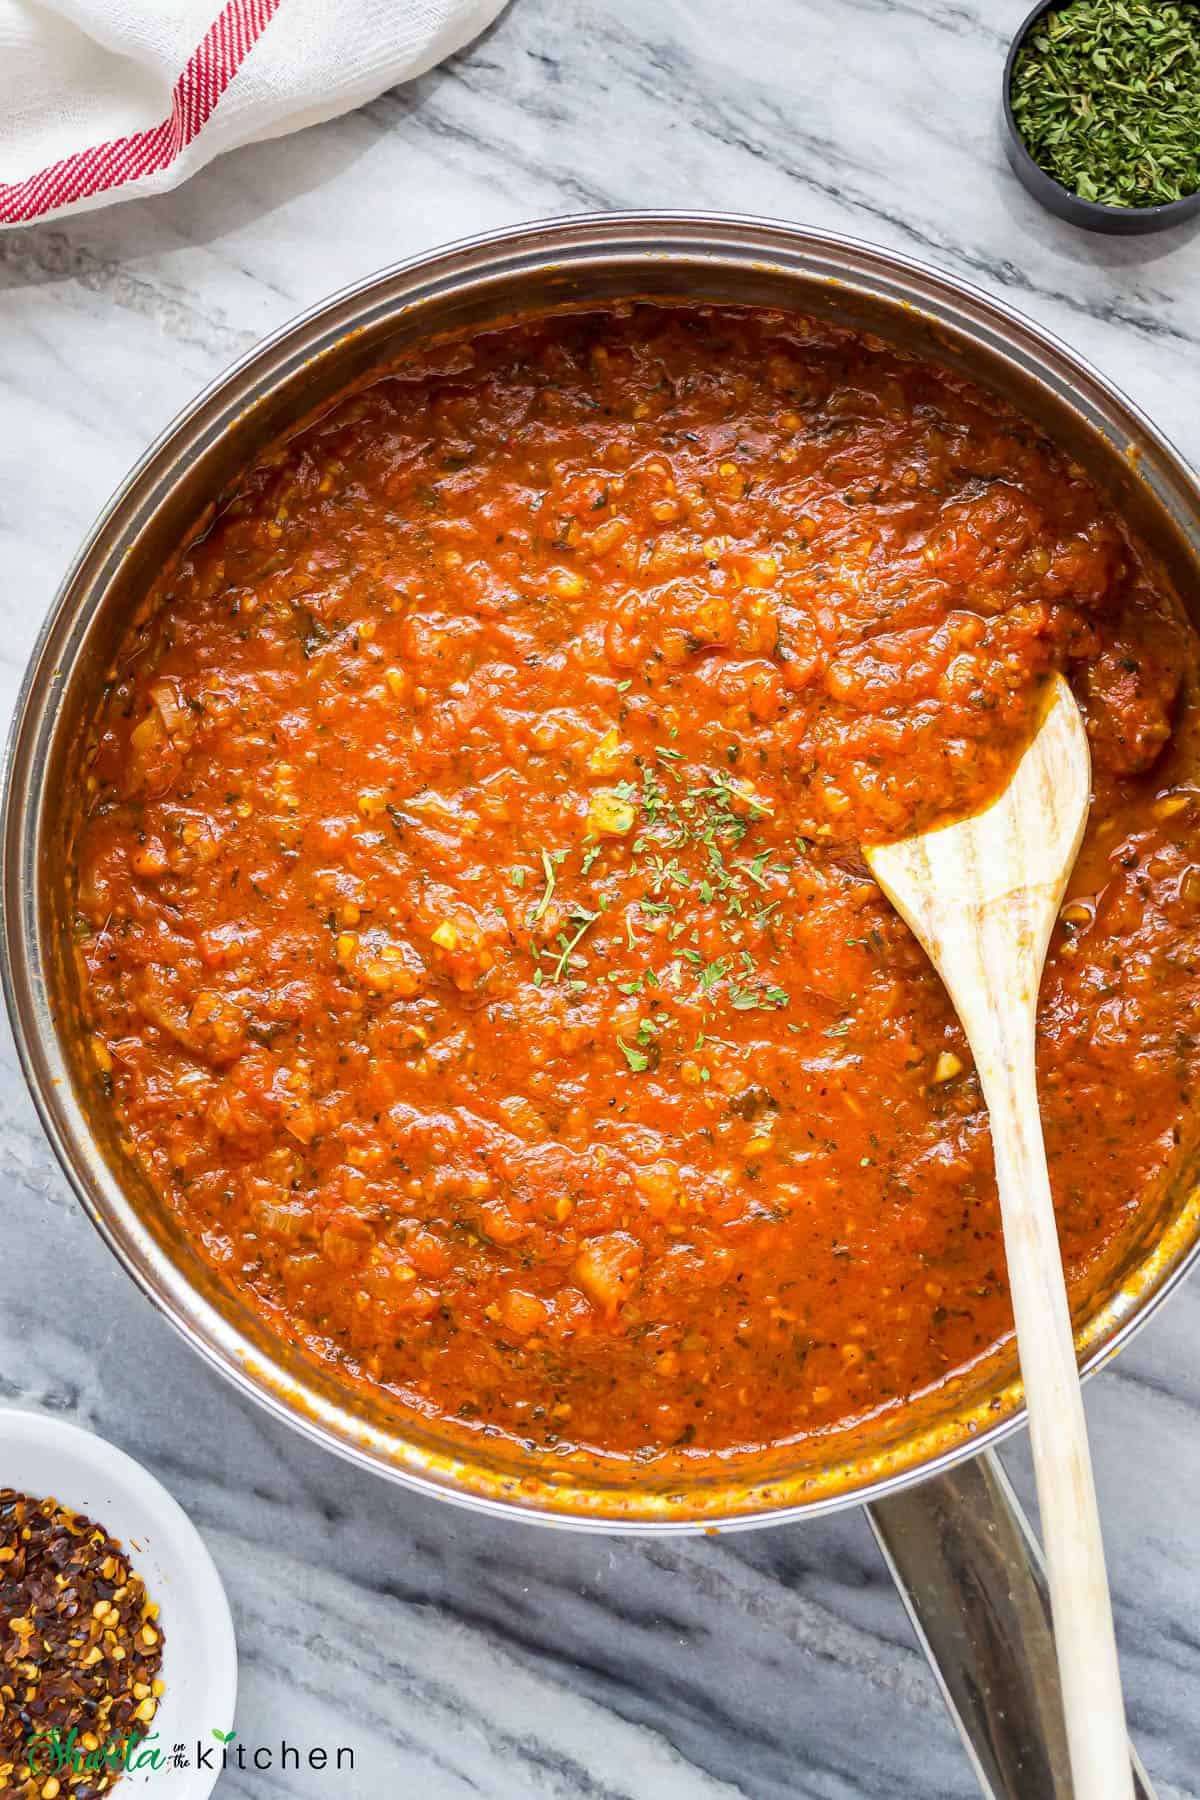 Arrabbiata sauce in a silver pot with a wooden spoon in it